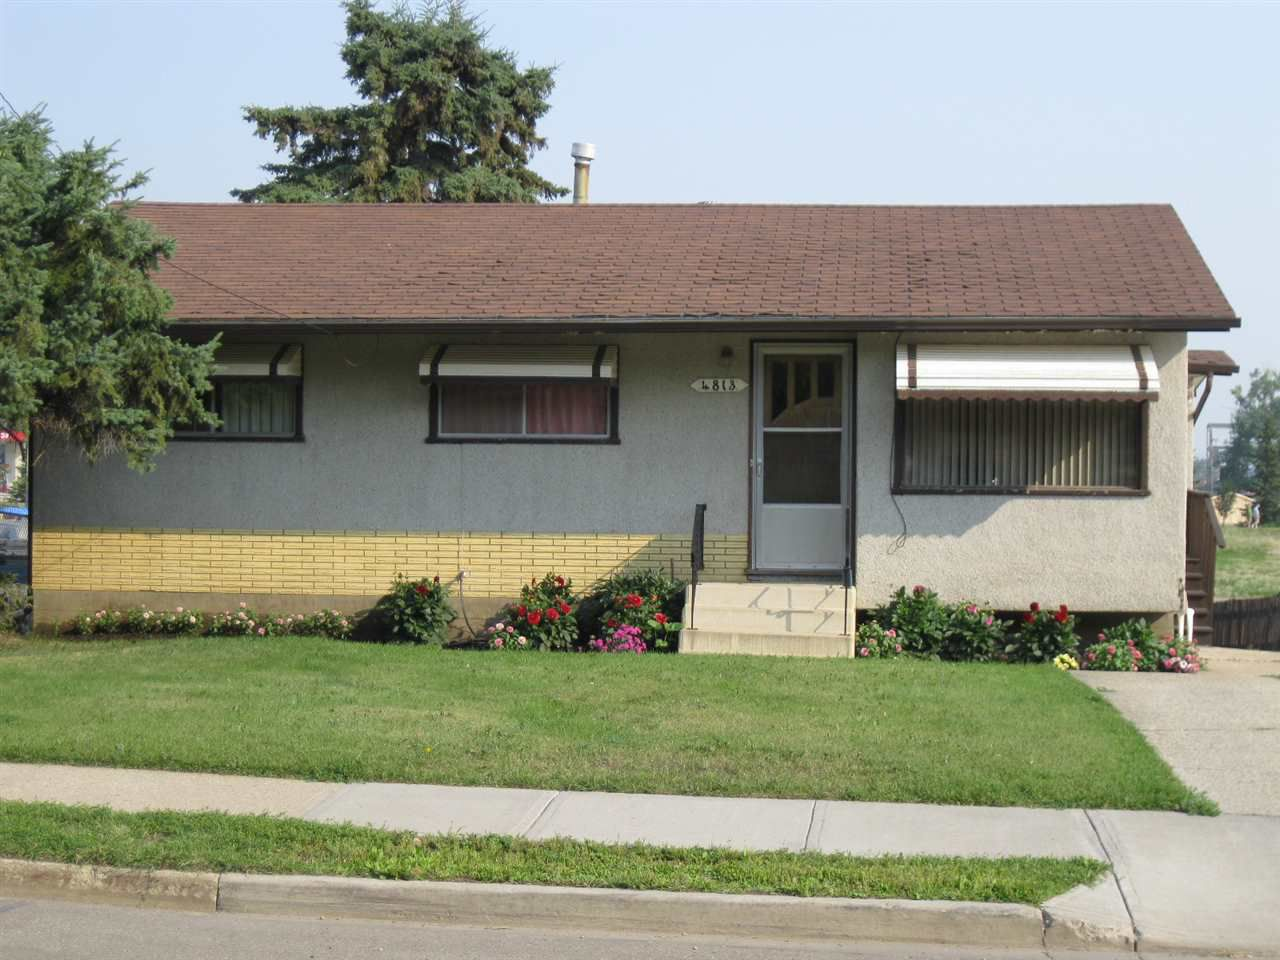 Main Photo: 4813 50 Street: Stony Plain House for sale : MLS®# E4104420